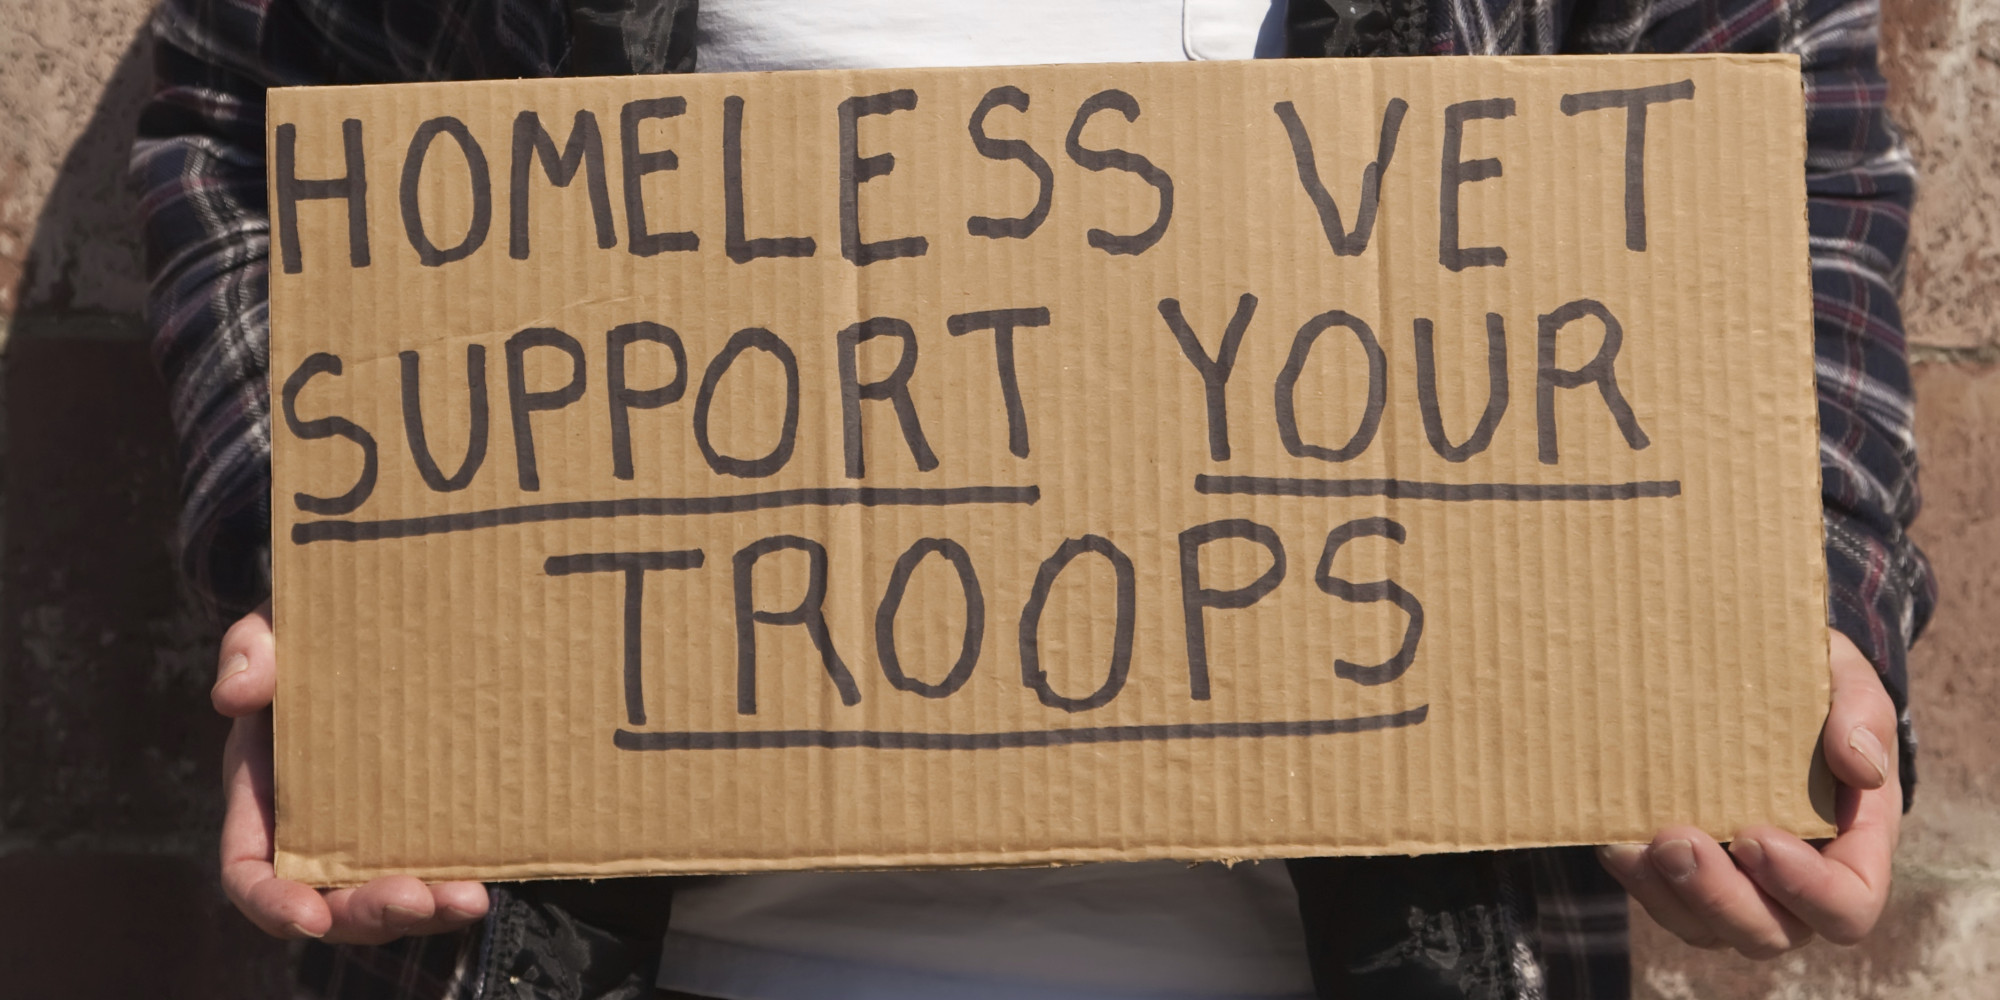 vulnerable population the homeless vetrans 2016's shocking homelessness statistics homeless veterans have served in several different this is one of the most vulnerable homeless populations.